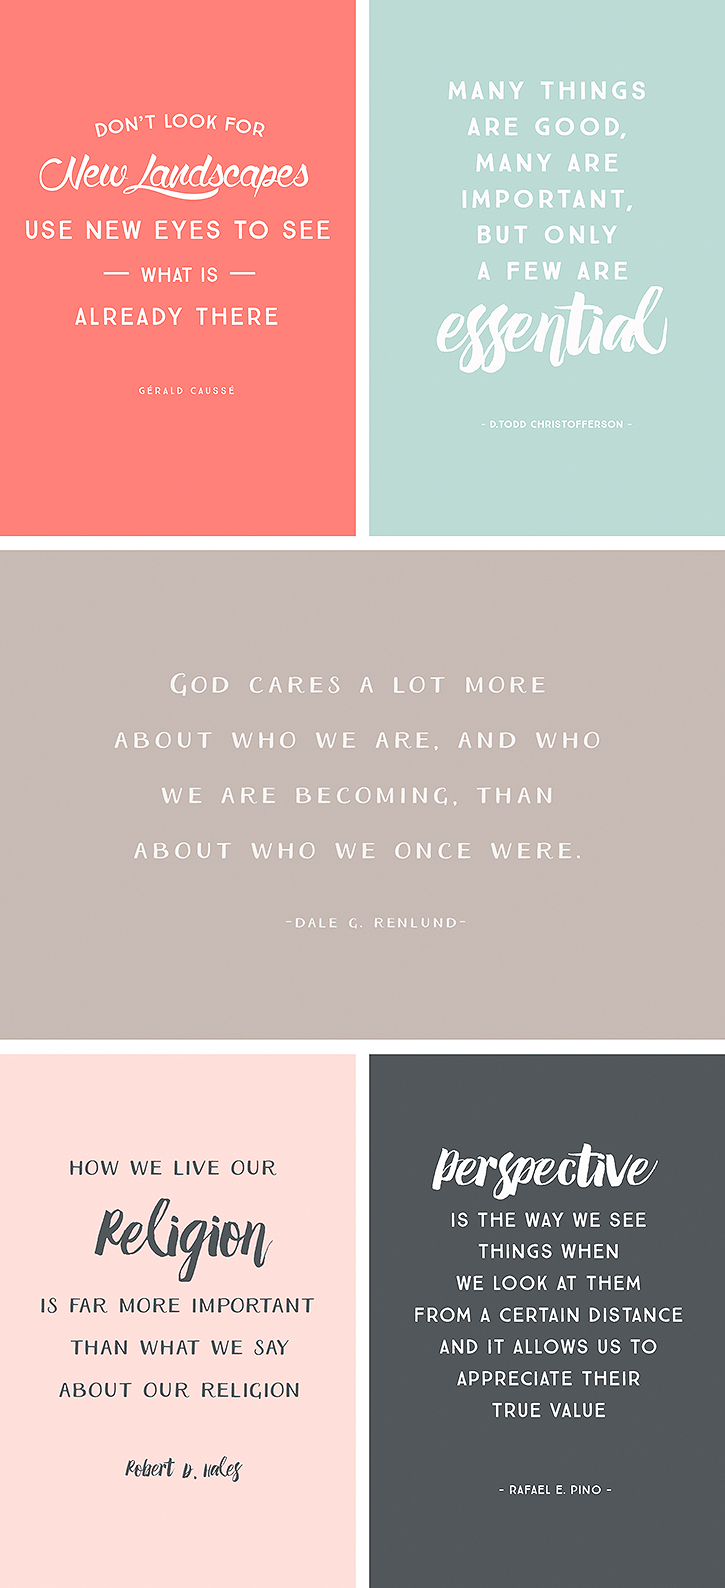 Over 20 printable and shareable quotes from the April 2015 session of LDS Conference.